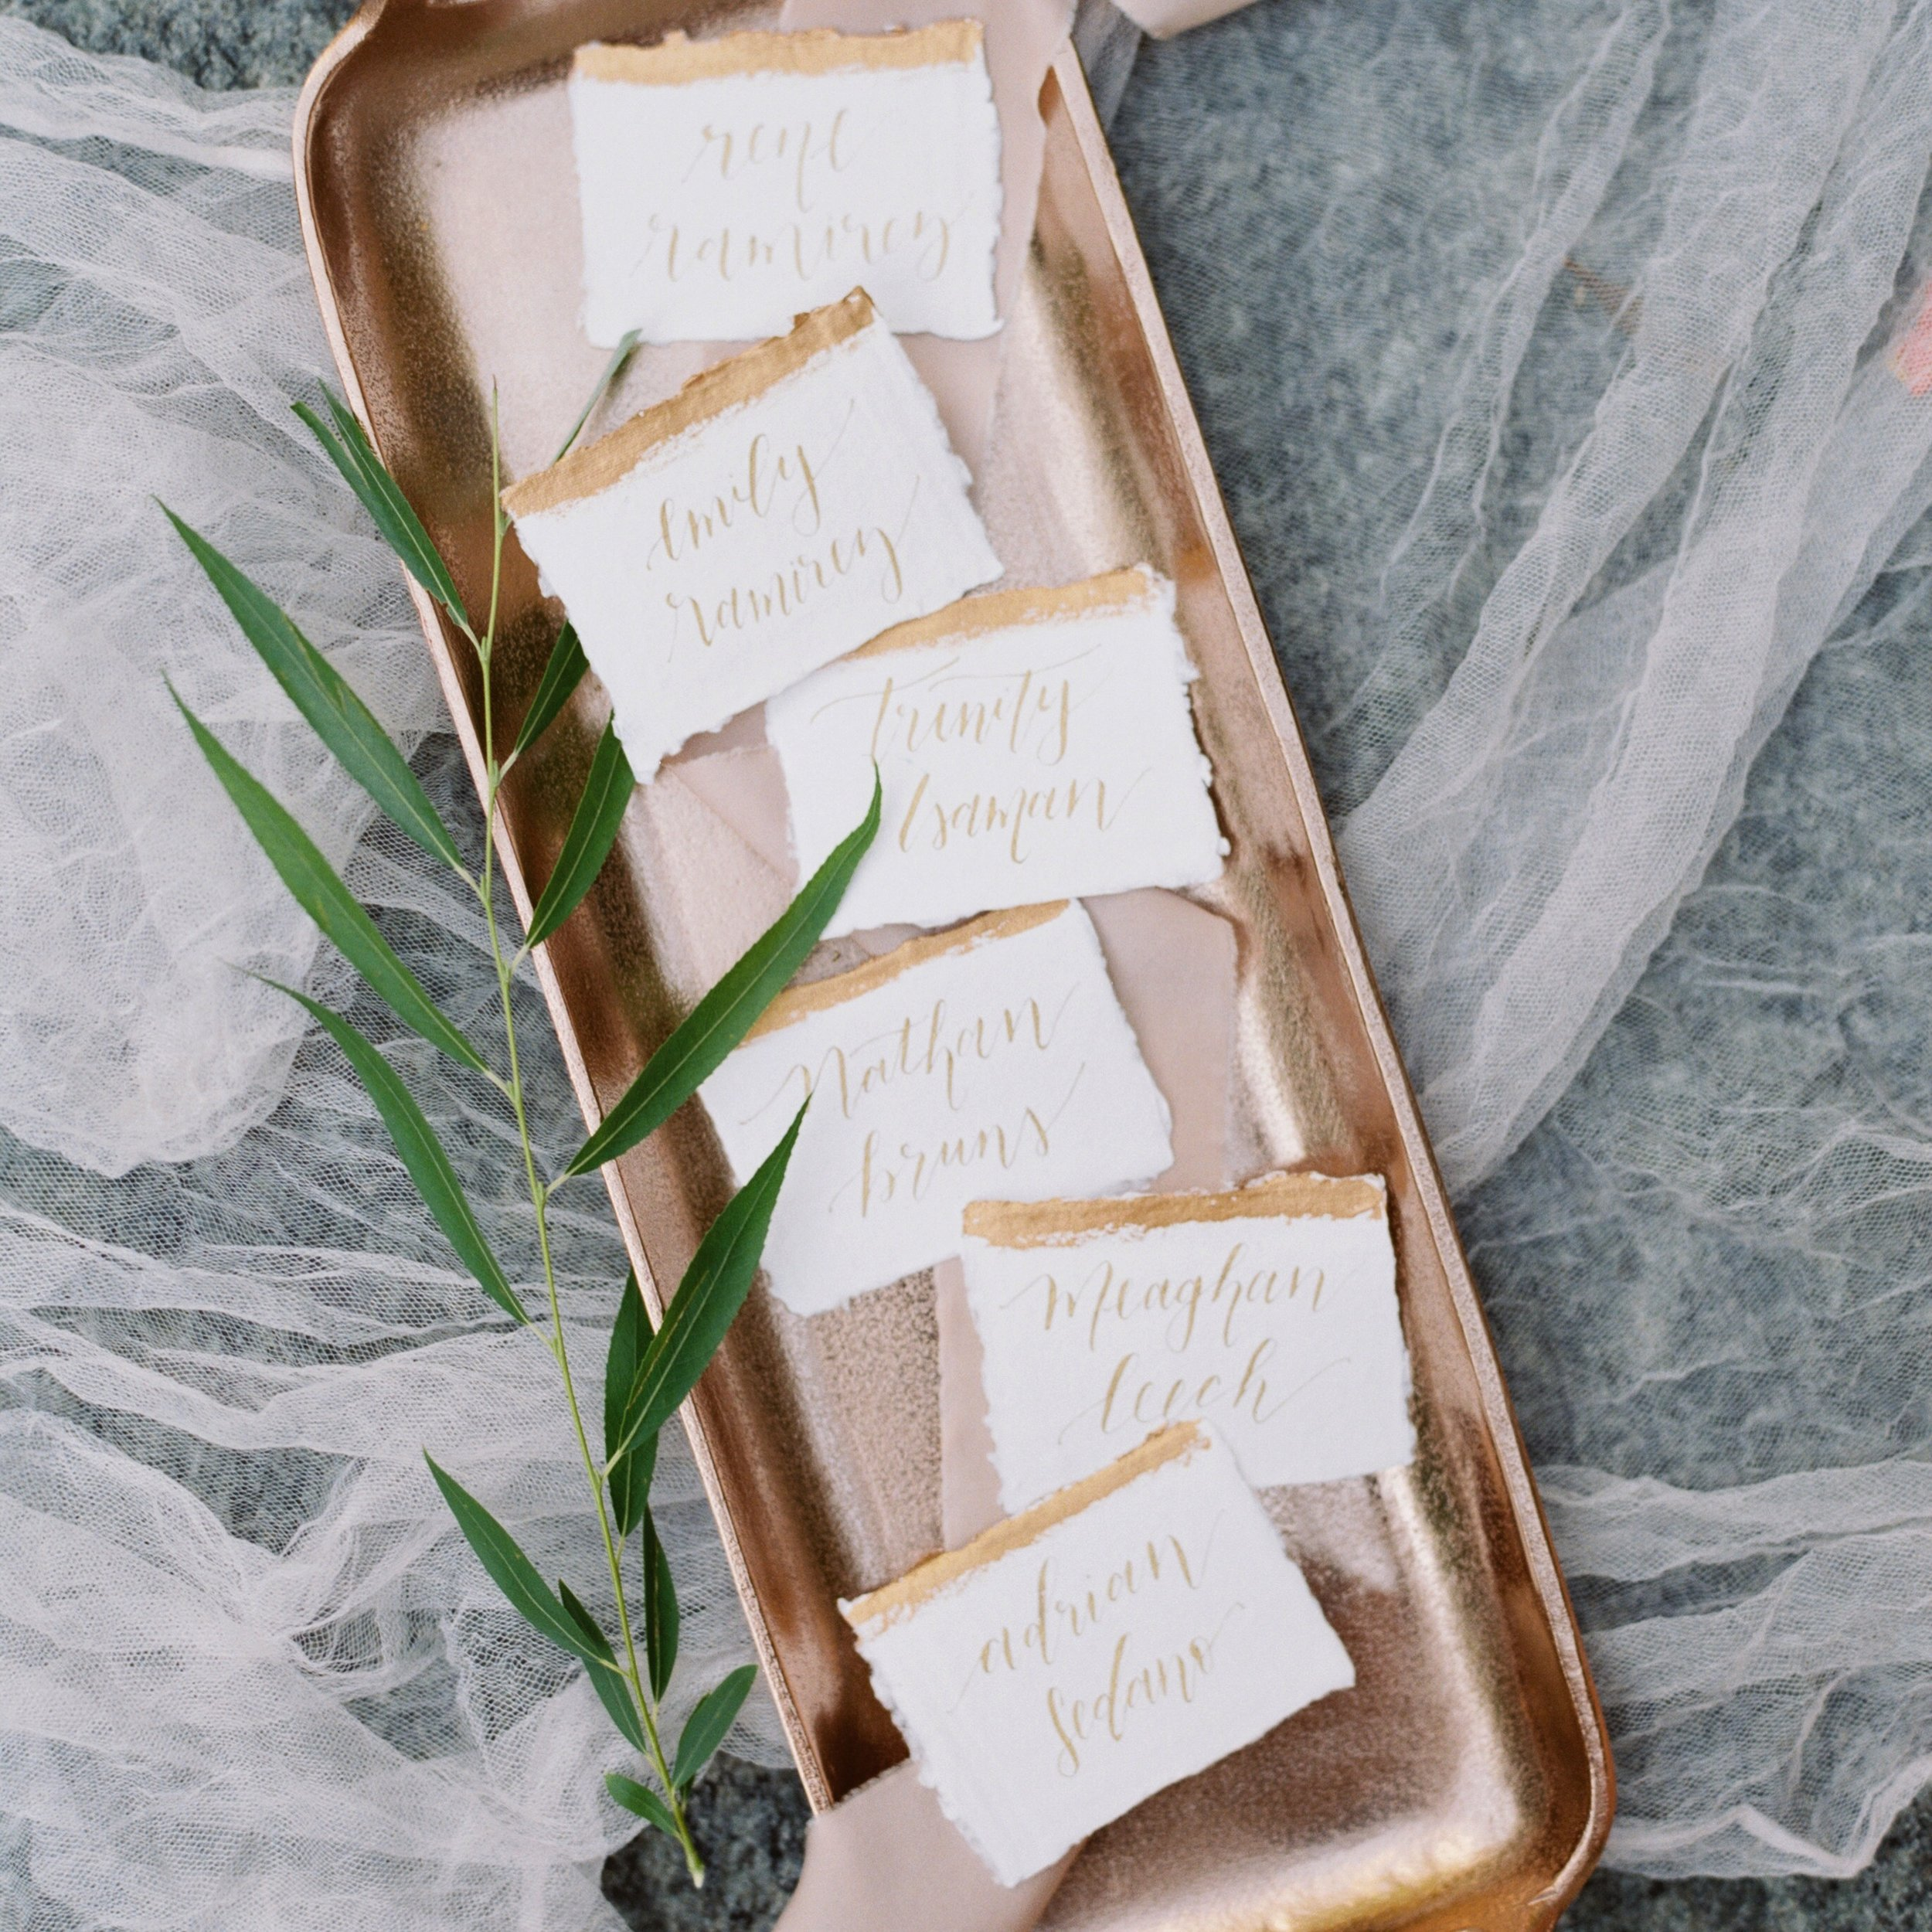 PRETTY POST CALLIGRAPHY SHANNON SKLOSS PHOTOGRAPHY GRIT & GOLD WEDDINGS THE SOUTHERN TABLE LA TAVOLA